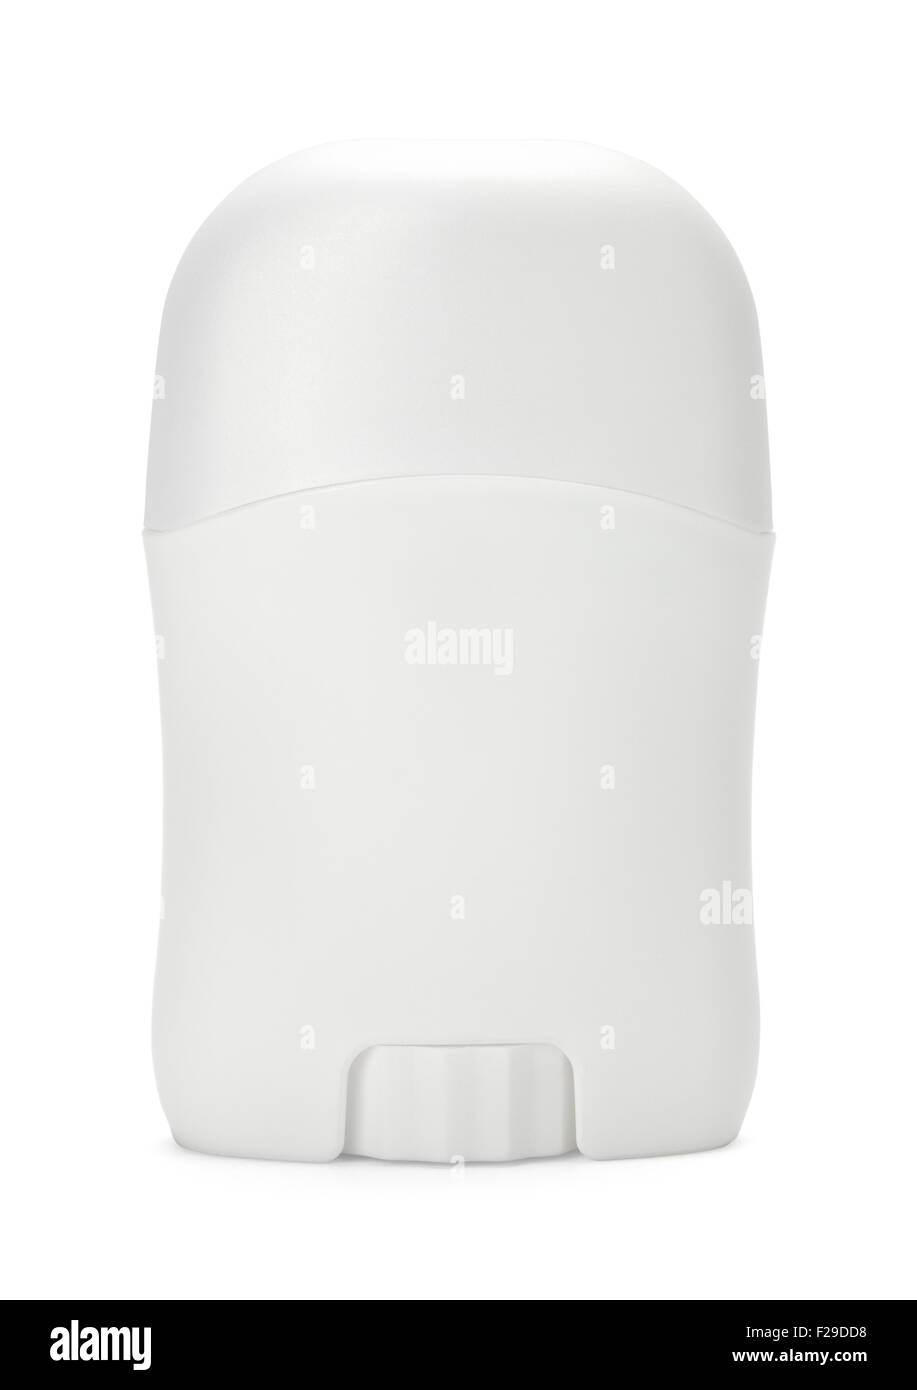 Roll on Deodorant with Copy Space Isolated on White Background. - Stock Image